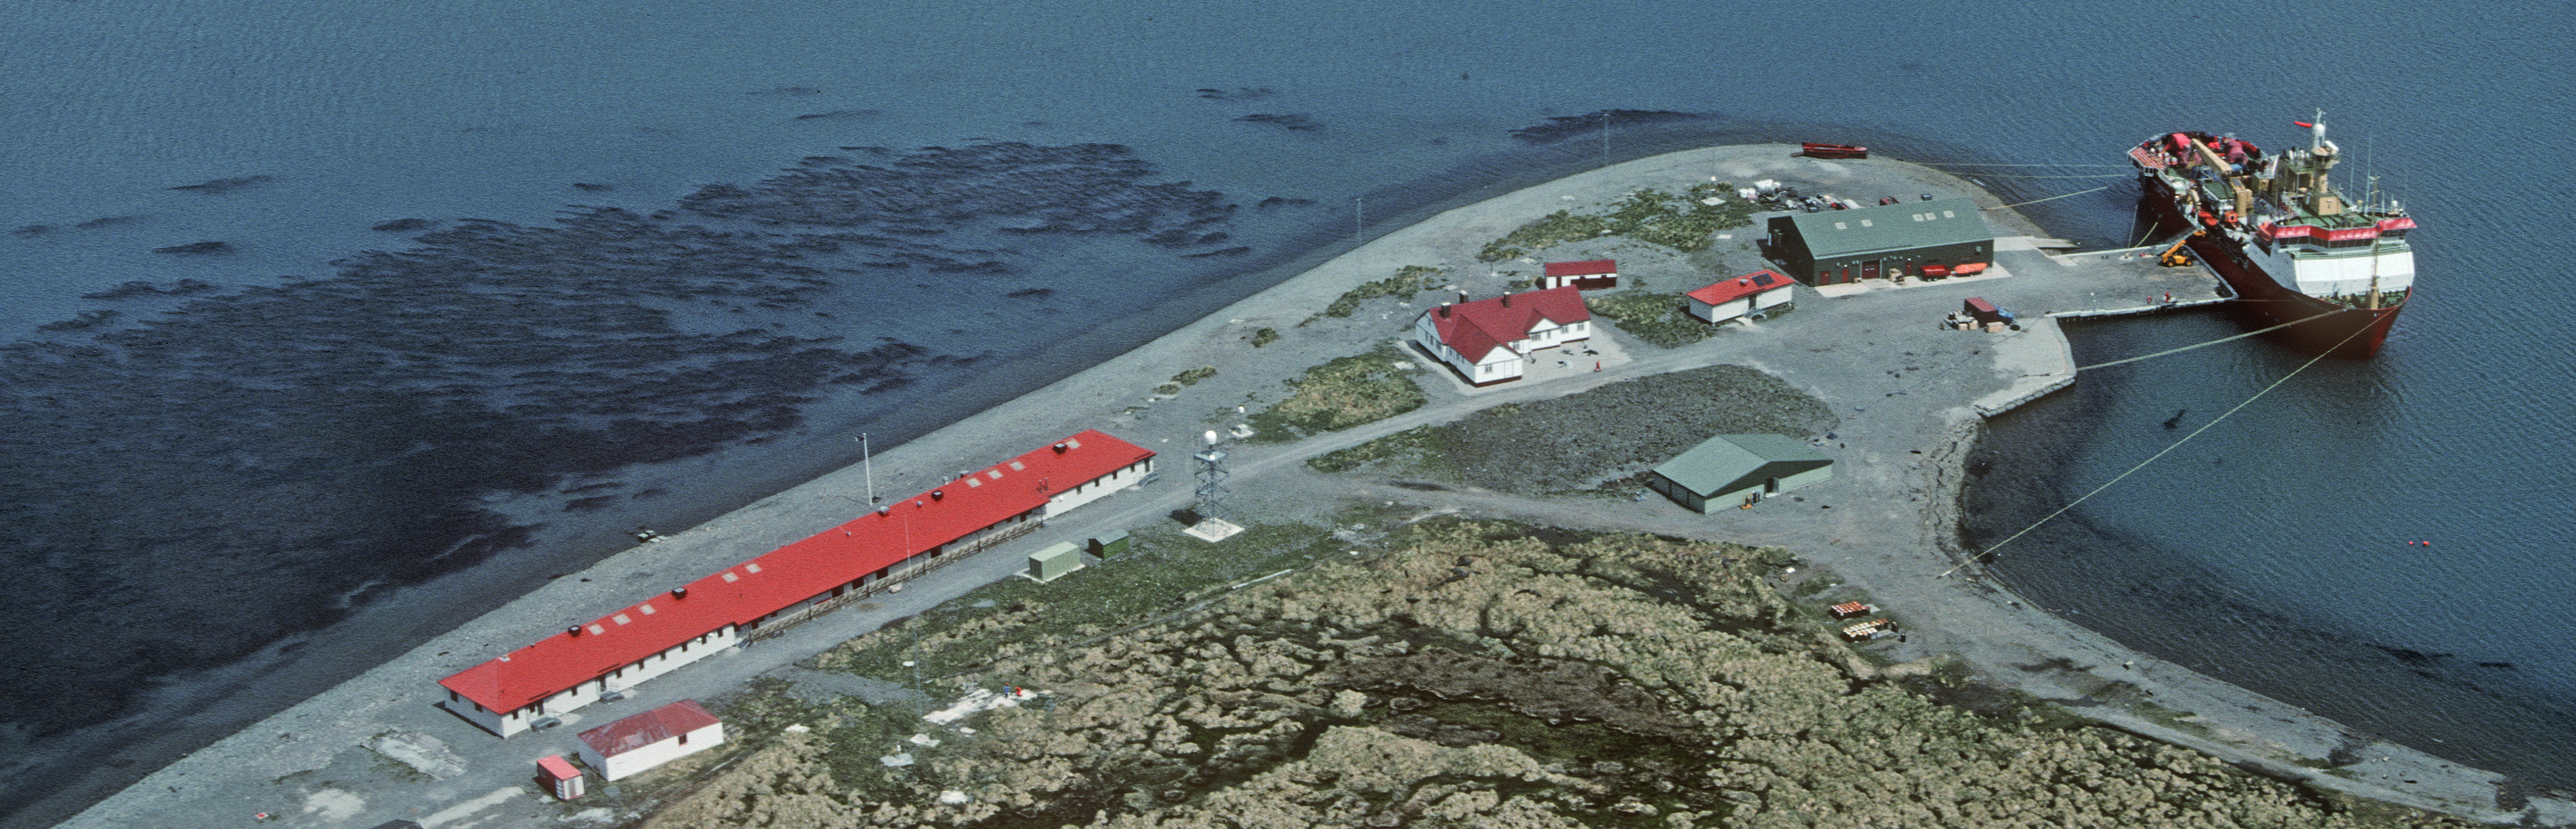 King Edward Point Research Station - British Antarctic Survey